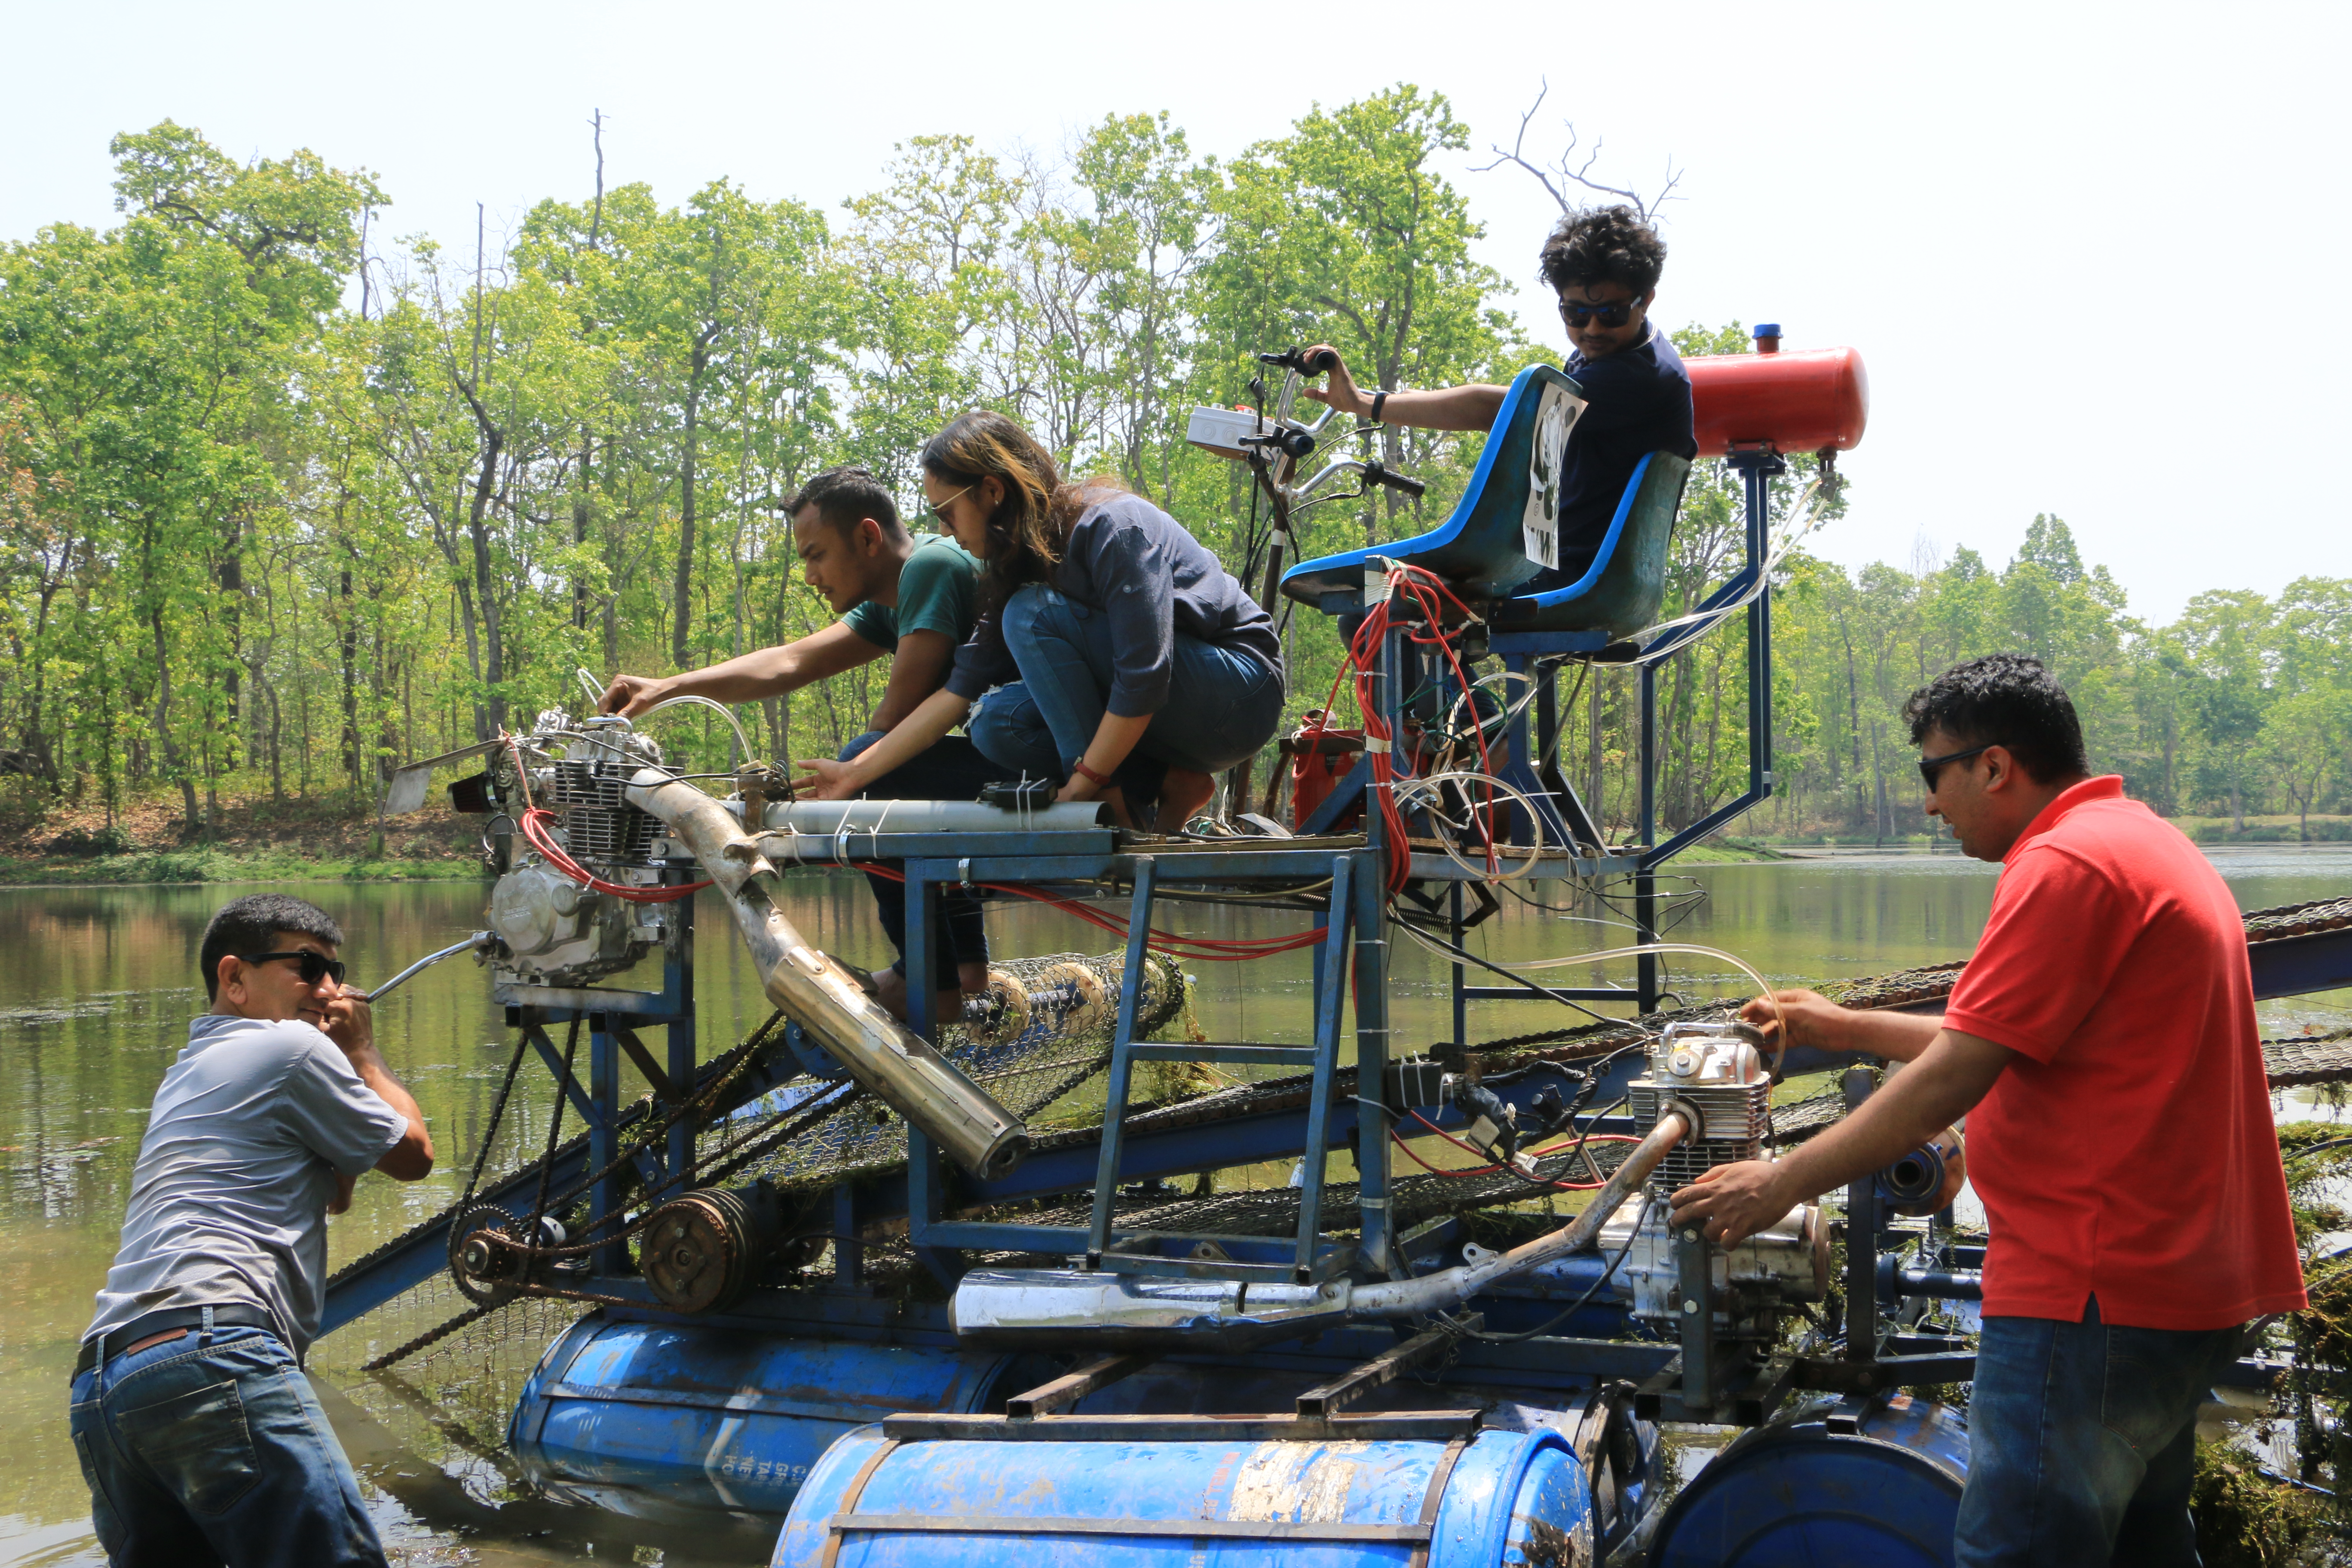 Upcycled water mower introduced for removal of invasive species